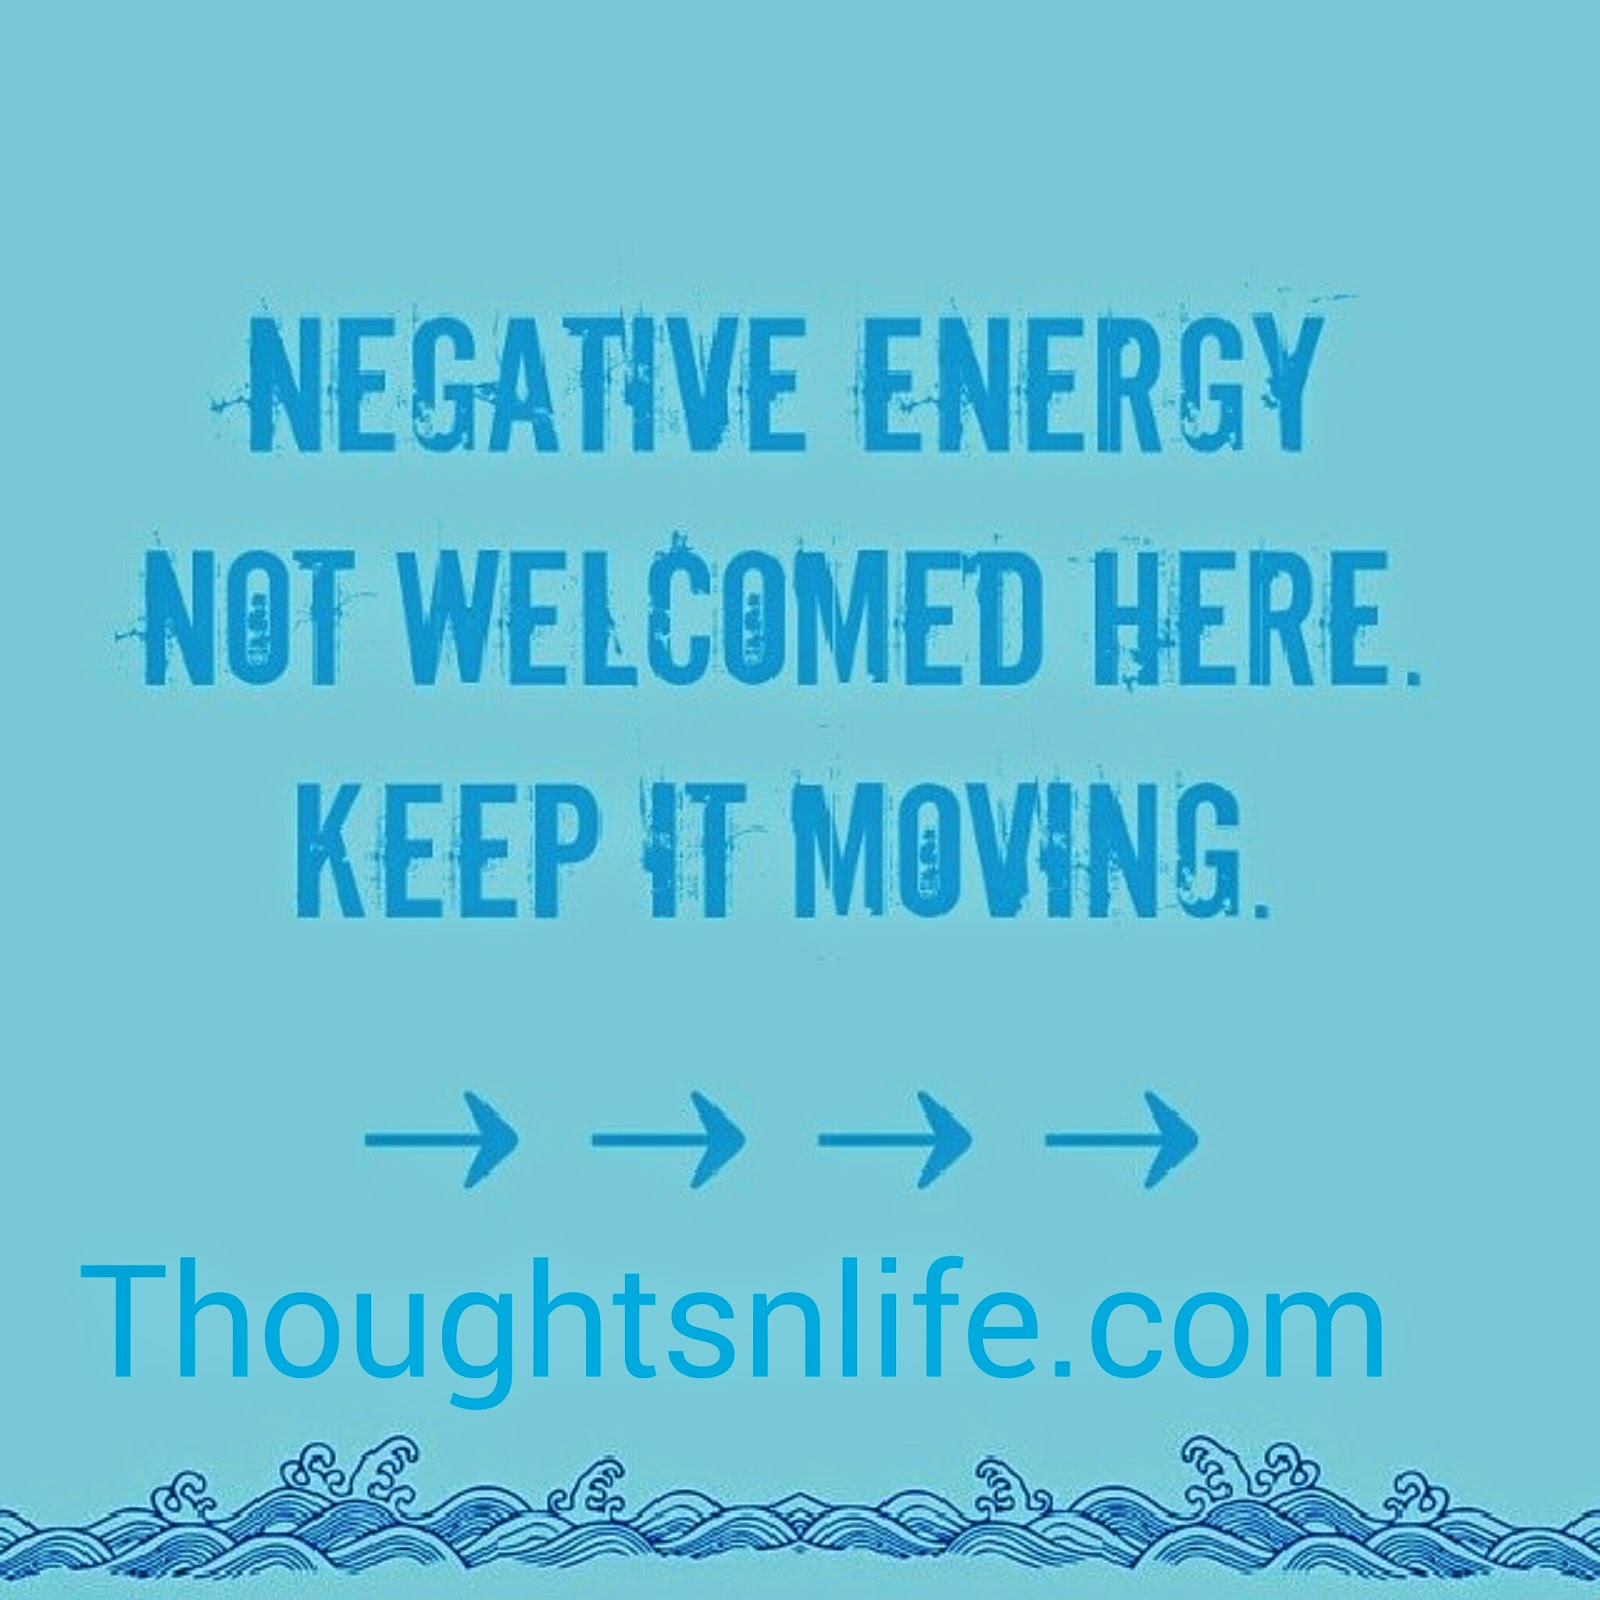 Keep It Moving Quotes Negative Energy Not Welcomed Herekeep It Moving.